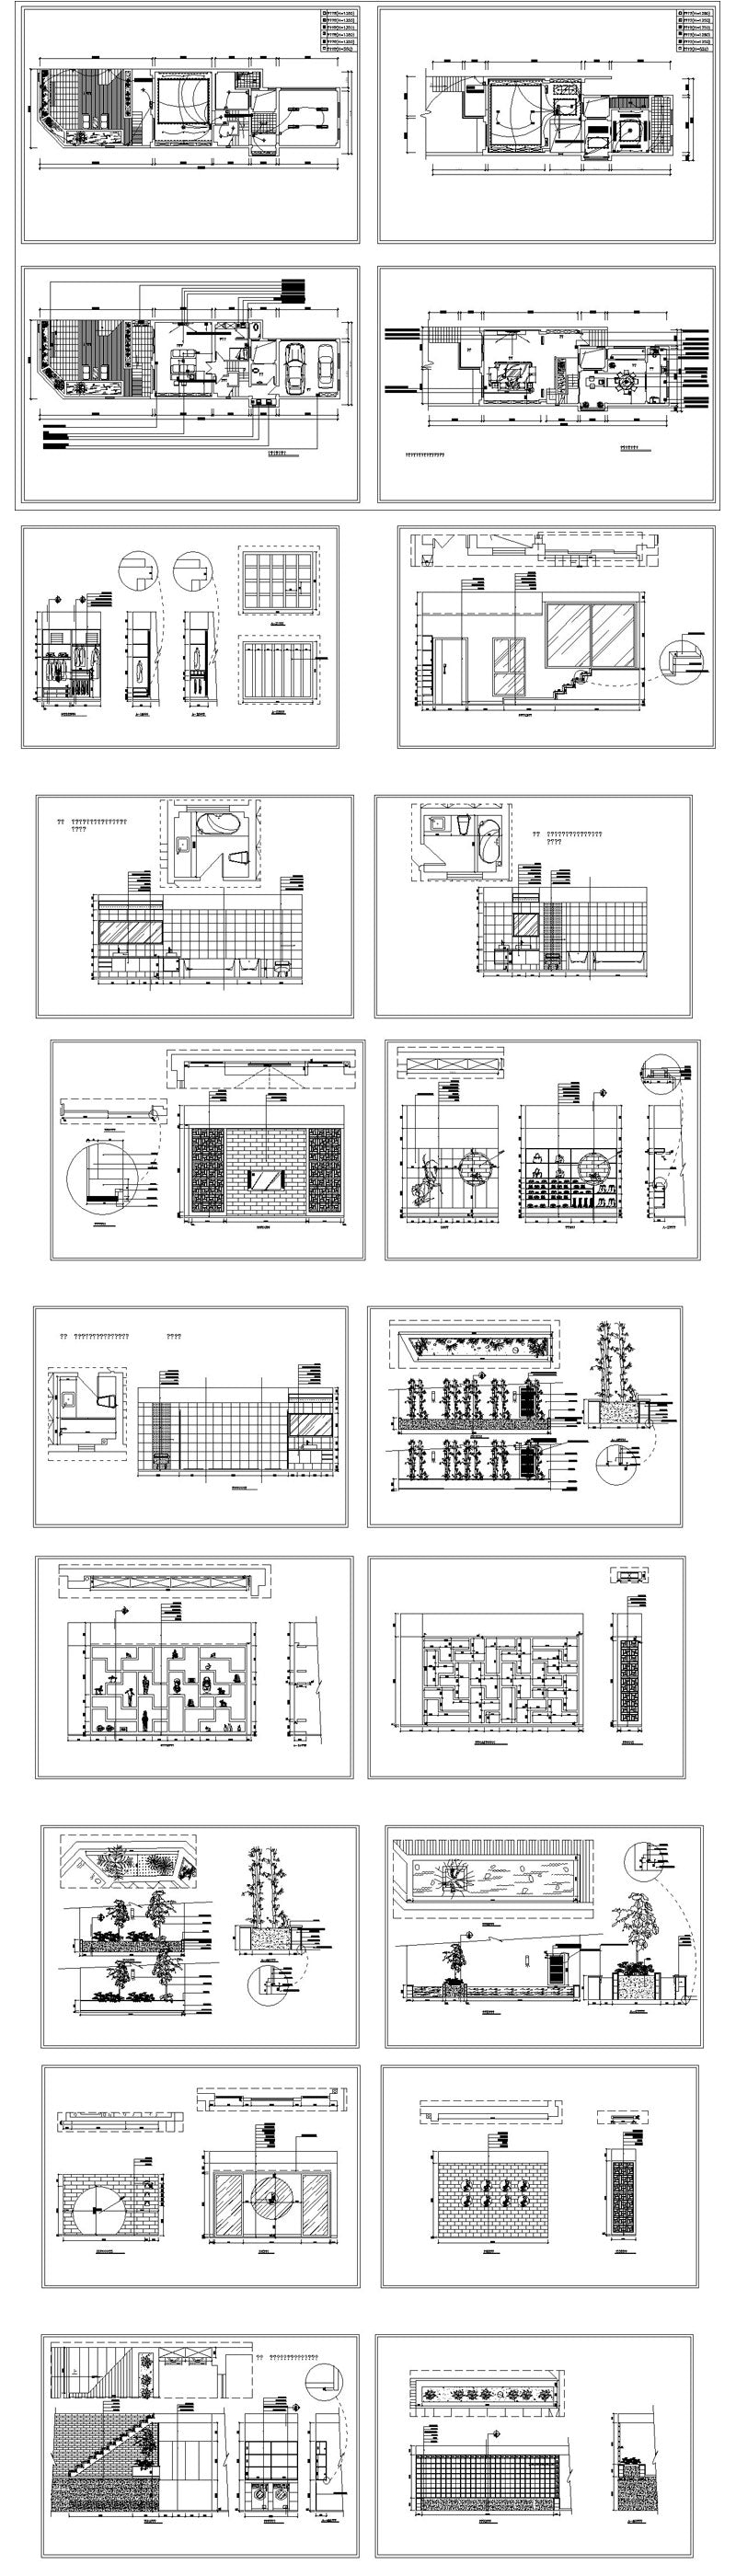 ★【Interior Design CAD Design,Details,Elevation Collection V.2】Residential Building,Layout,Lobby,Room design,Decoration@Autocad Blocks,Drawings,CAD Details,Elevation